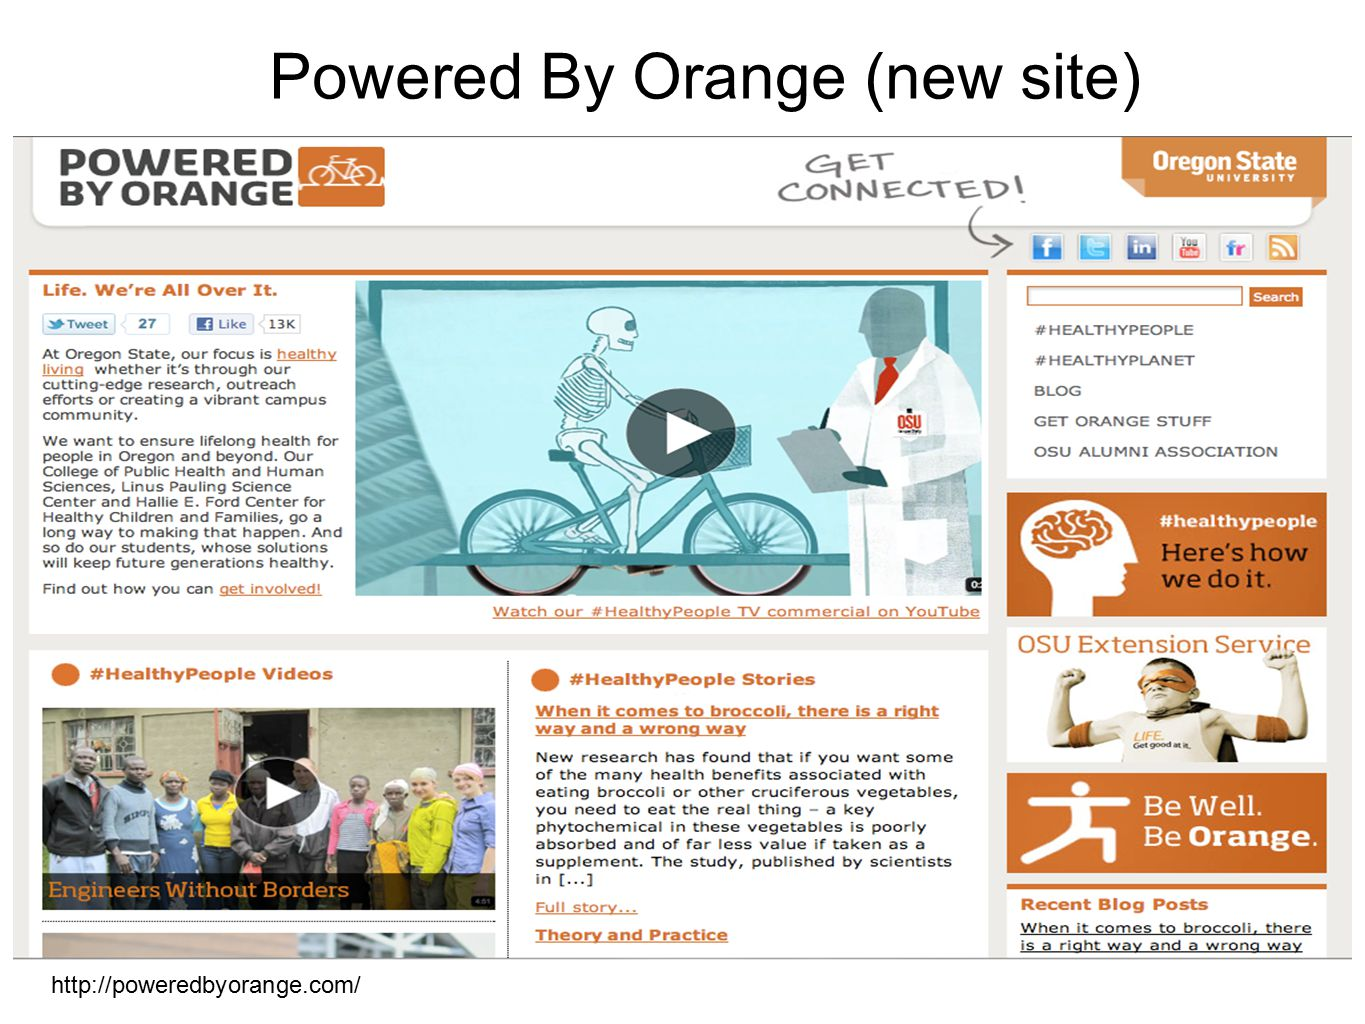 Powered By Orange (new site) http://poweredbyorange.com/